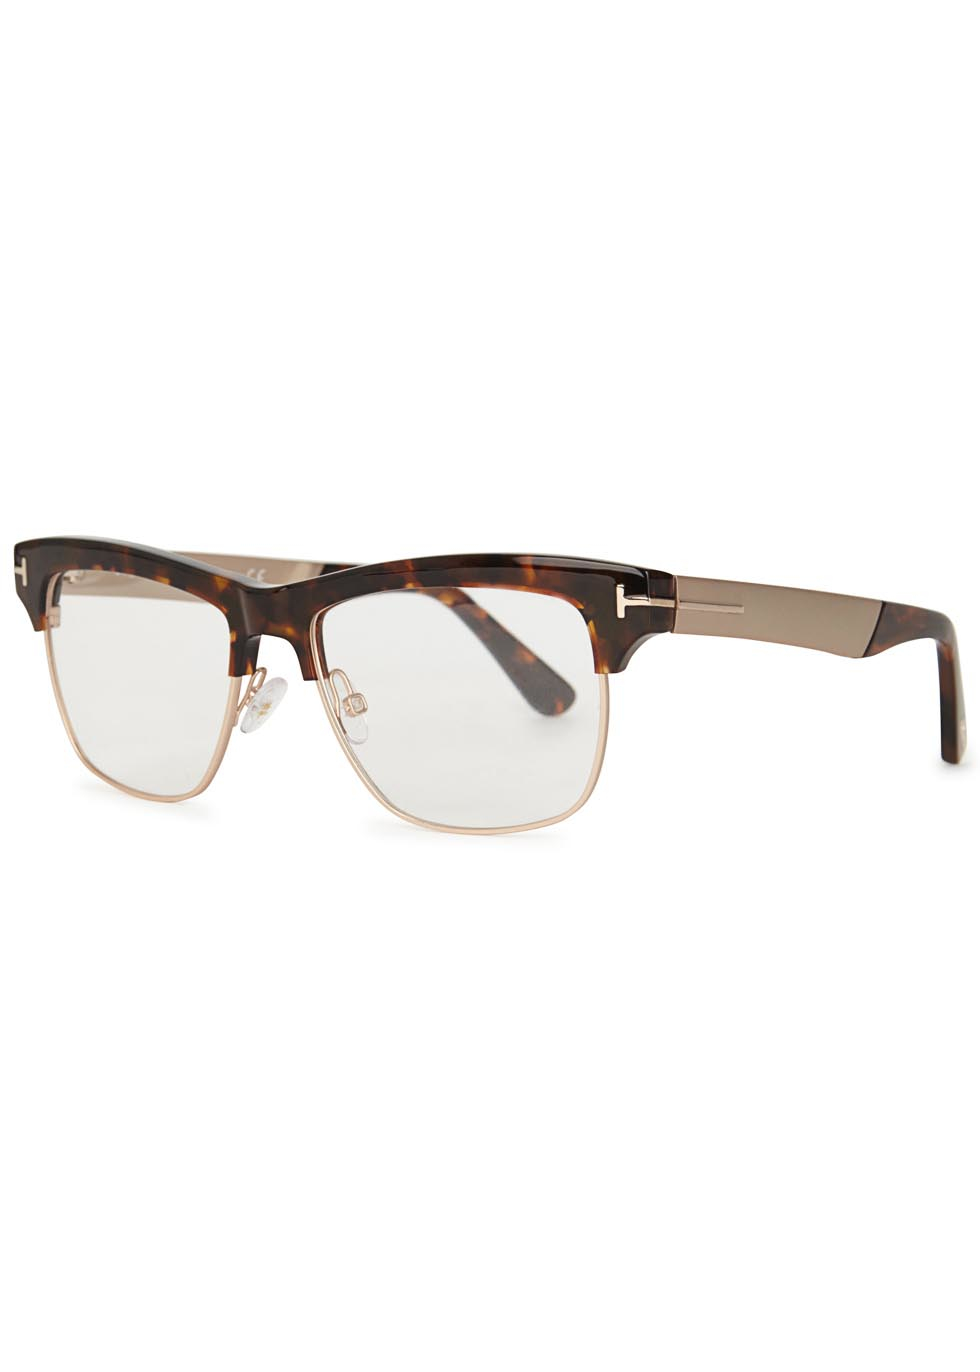 e342e02ae70 Tom Ford Tortoiseshell Clubmaster-style Optical Glasses in Brown for ...